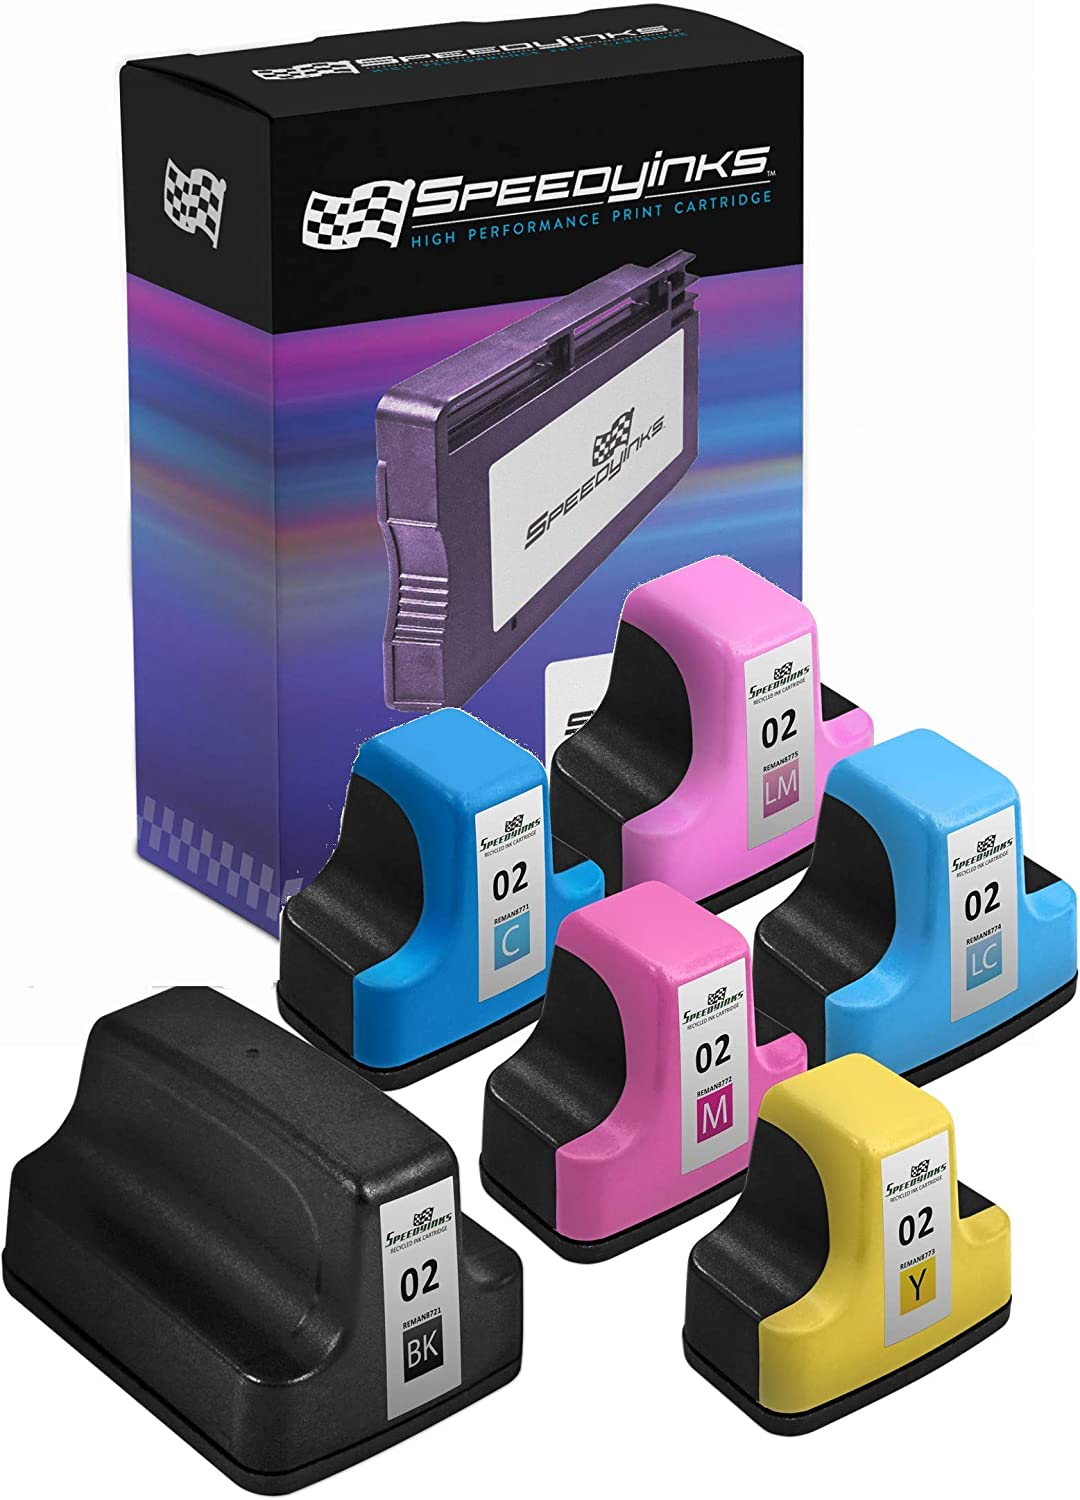 Speedy Inks Remanufactured Ink Cartridges Replacement for HP 02 (1 Black, 1 Cyan, 1 Magenta, 1 Yellow, 1 Light Cyan, 1 Light Magenta, 6-Pack)